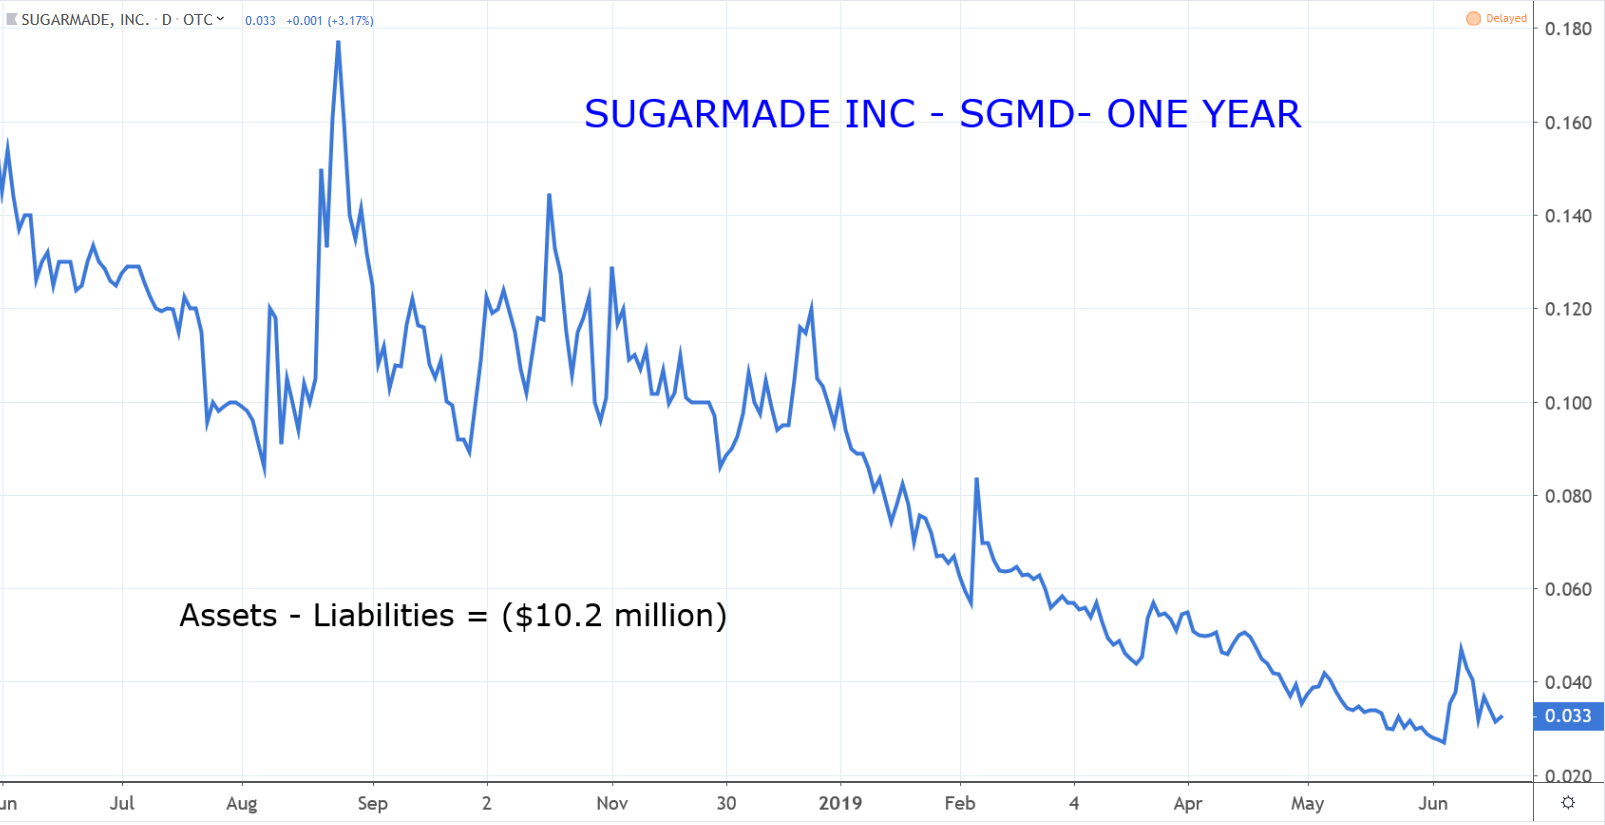 Penny Stocks: Sugarmade (SGMD)